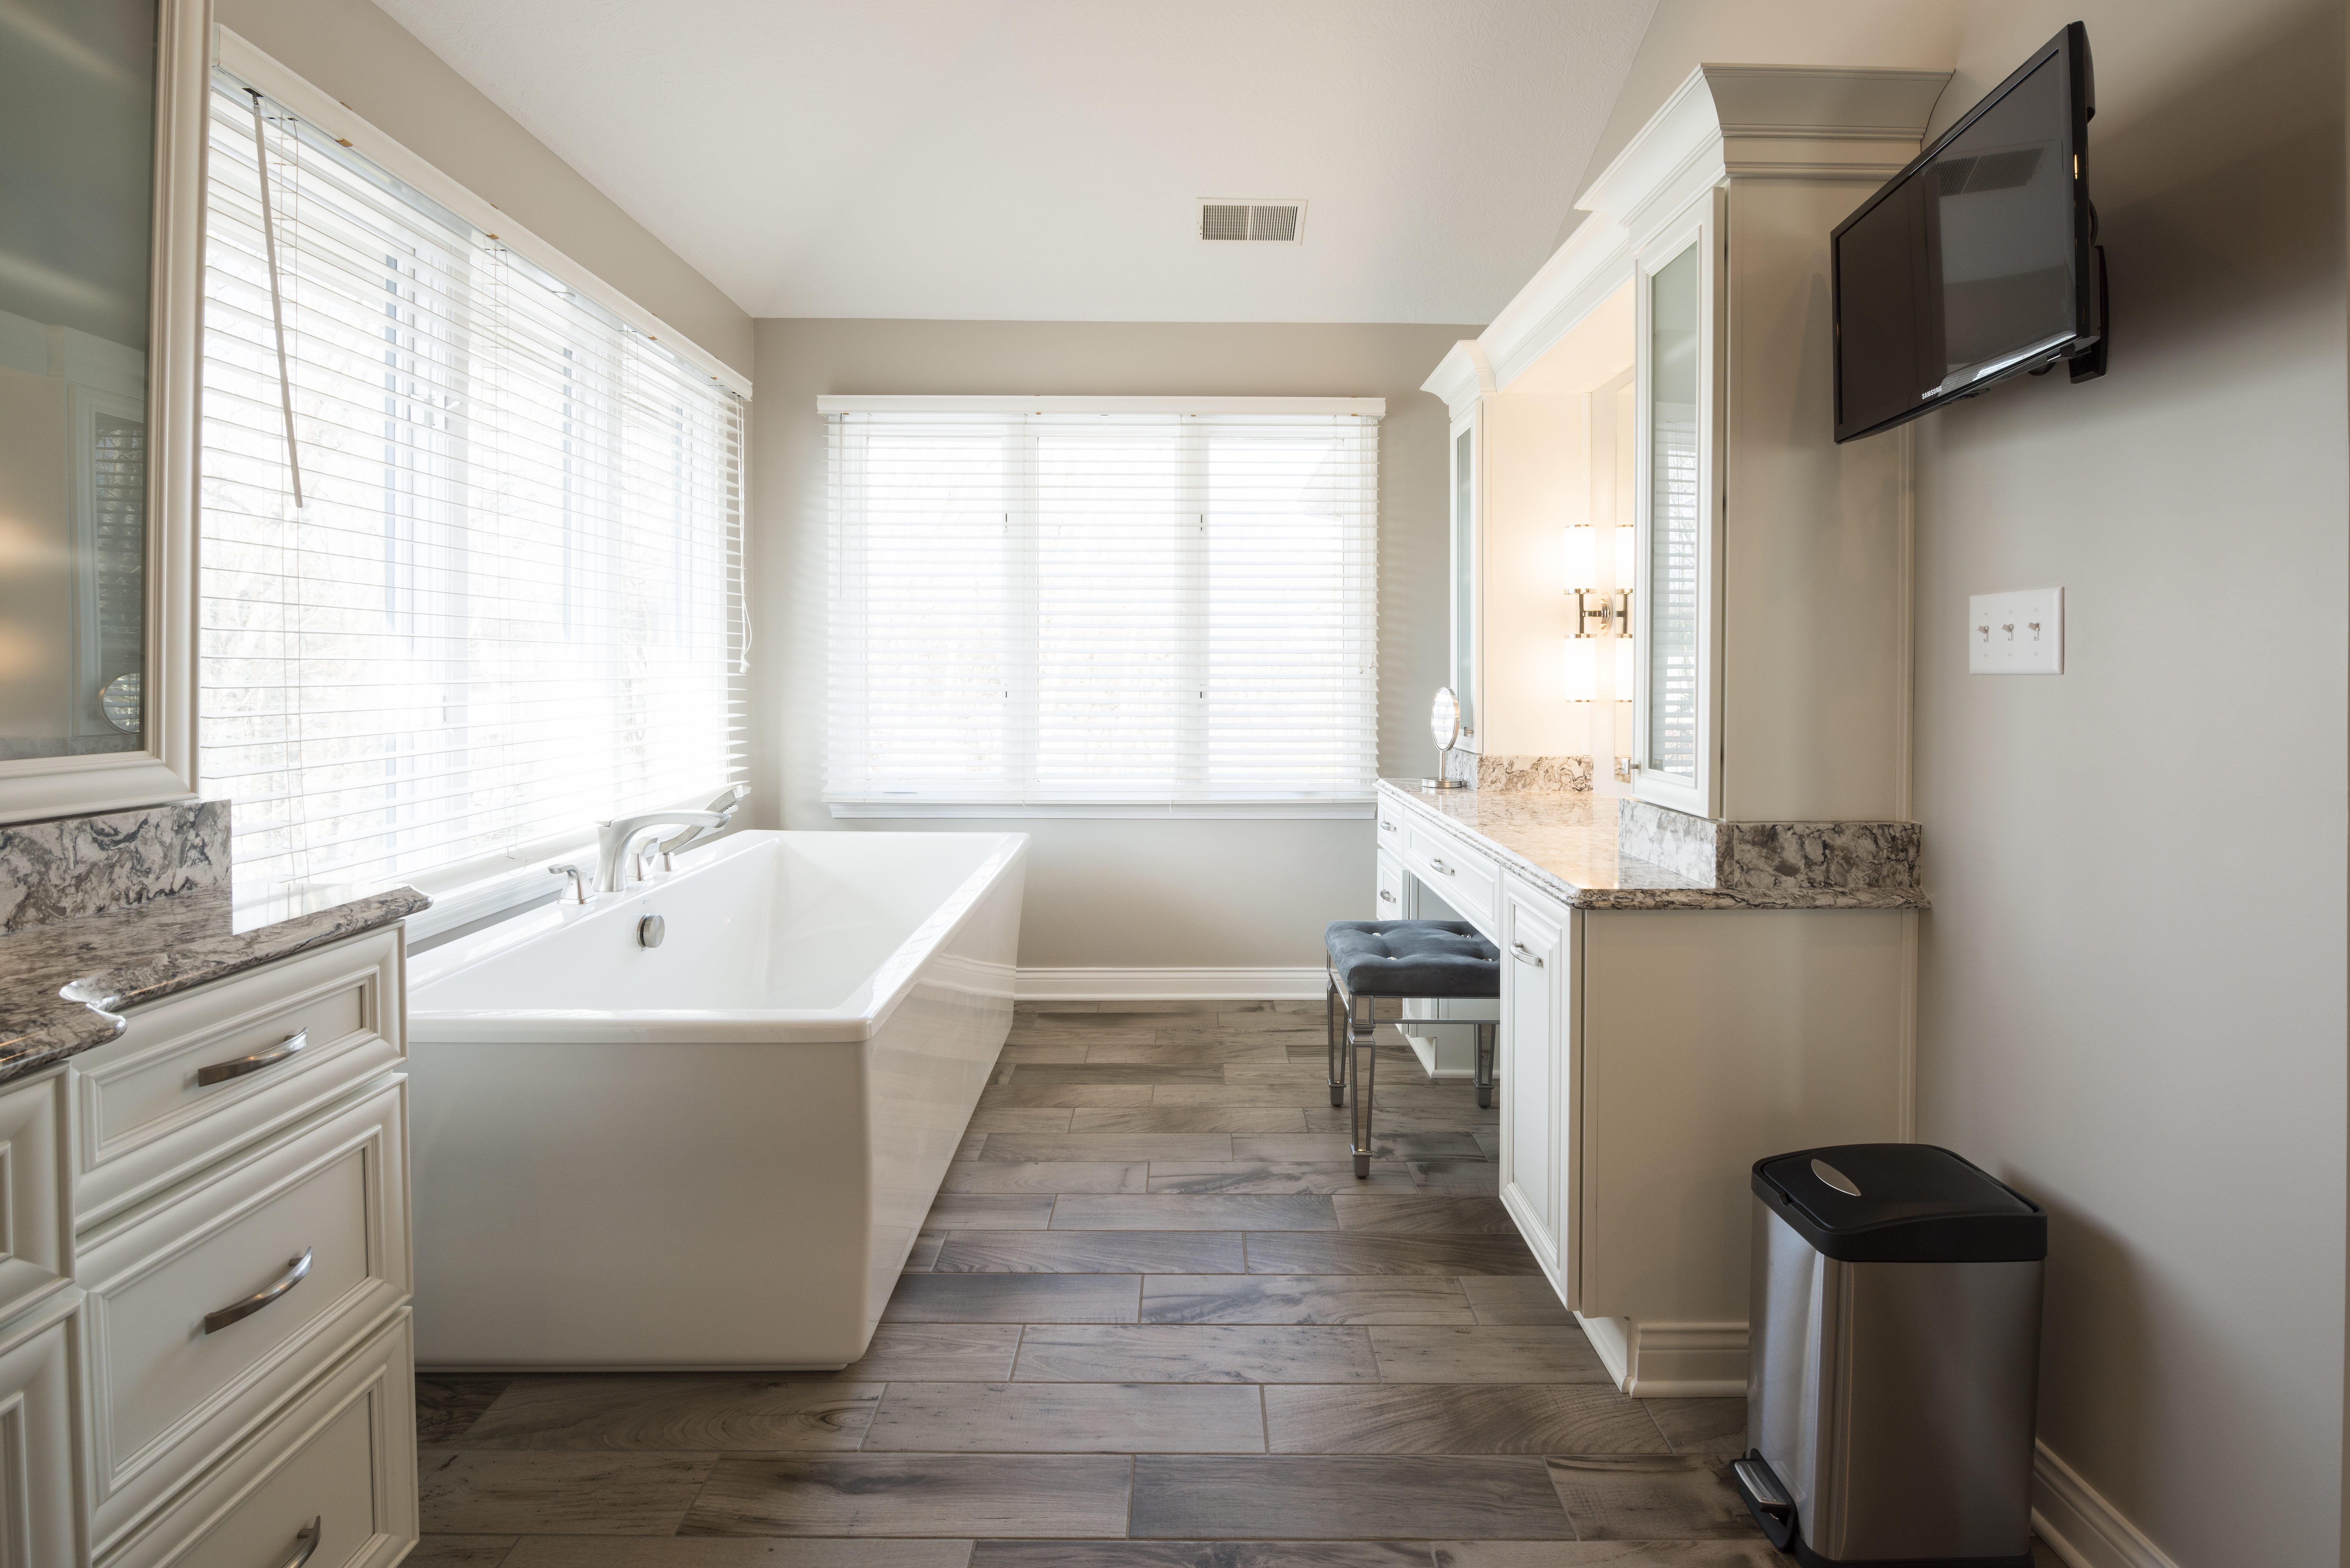 floor shower small applying porcelain designs of decor trends full size look plank bathrooms wall lowes with floors decorating wood tile pebble grain remodel vanities accessories ideas bathroom blendart for